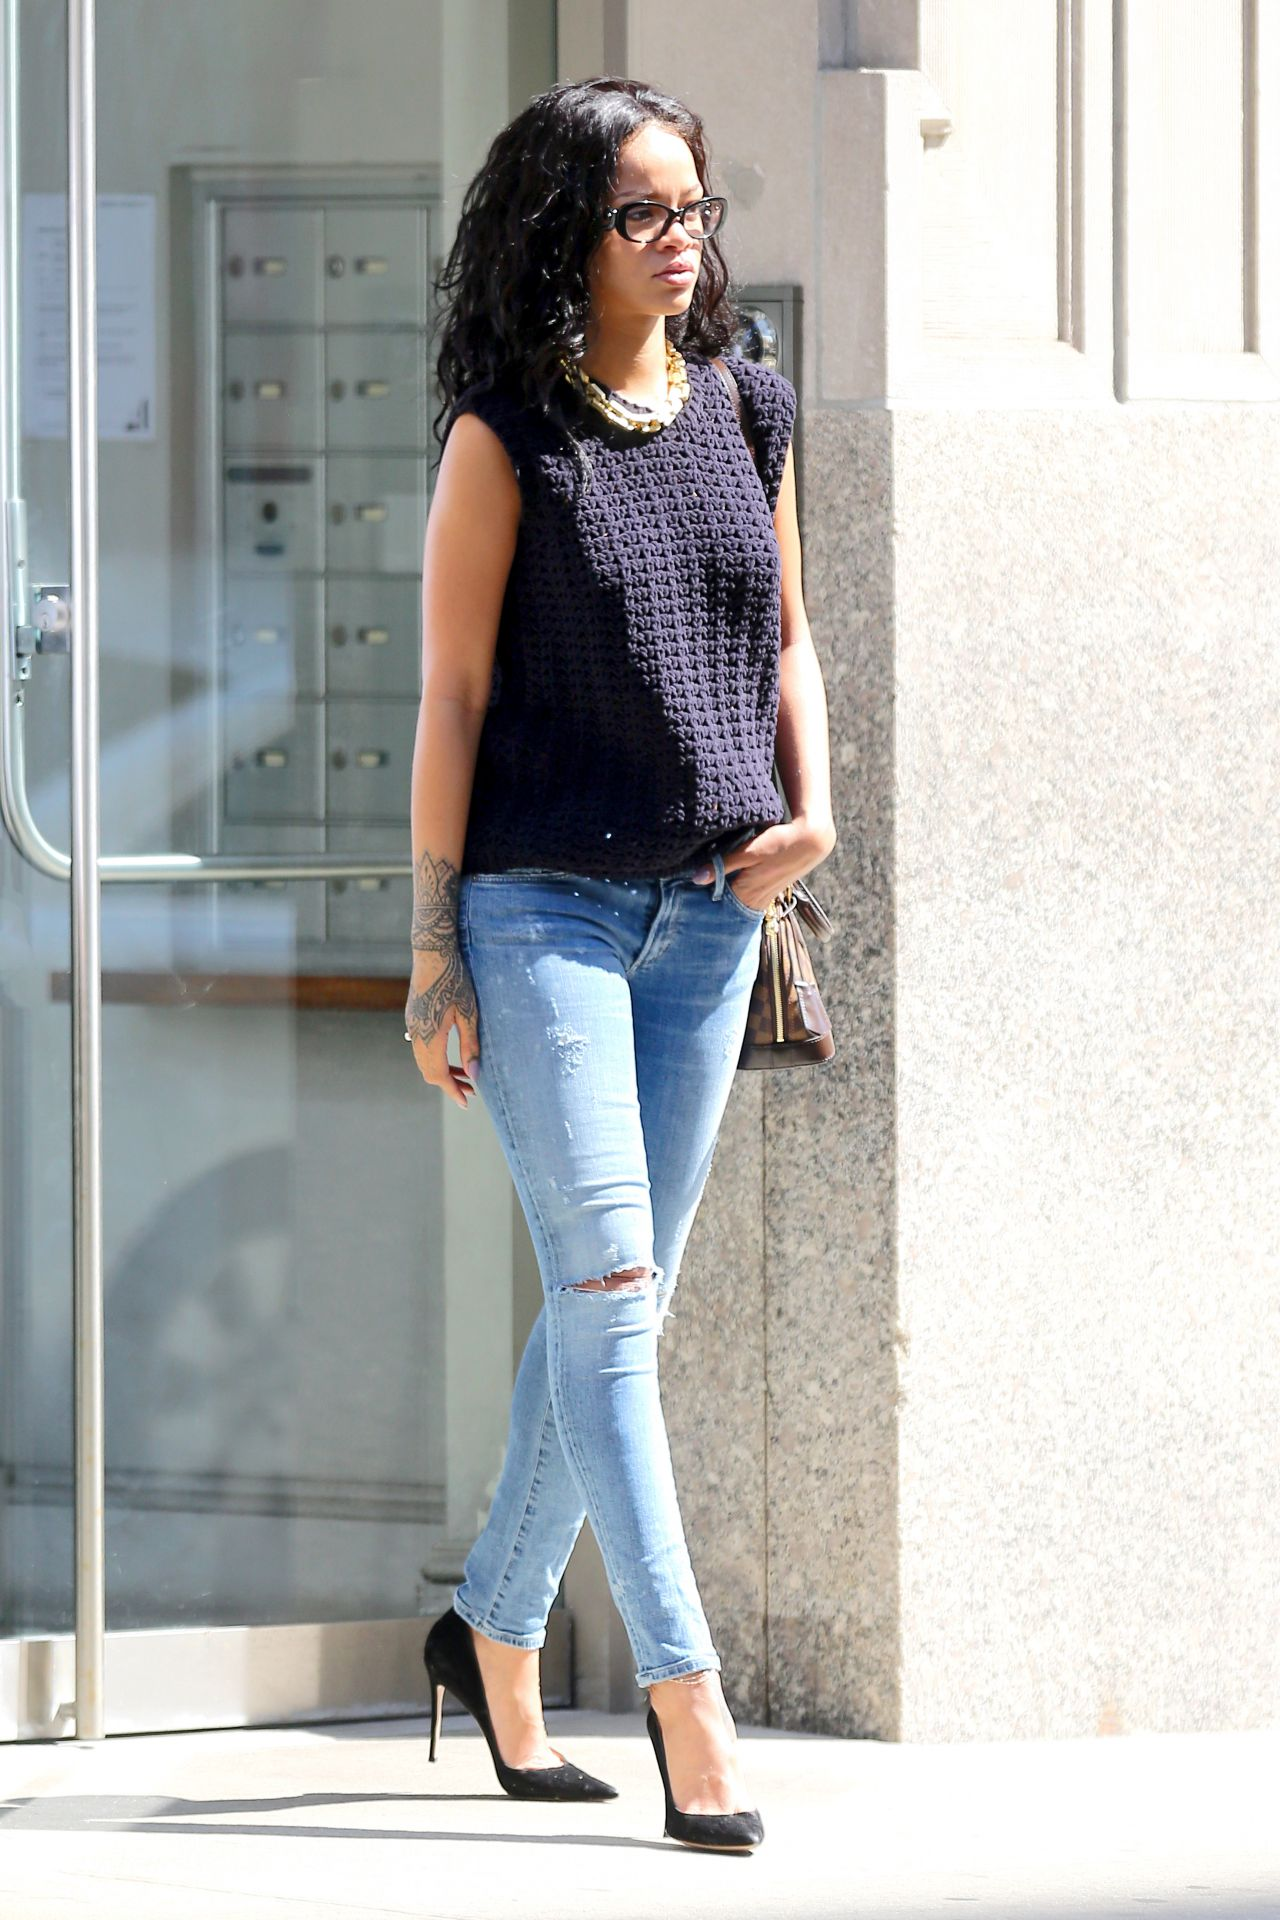 Rihanna In Jeans Out In New York City June 2014